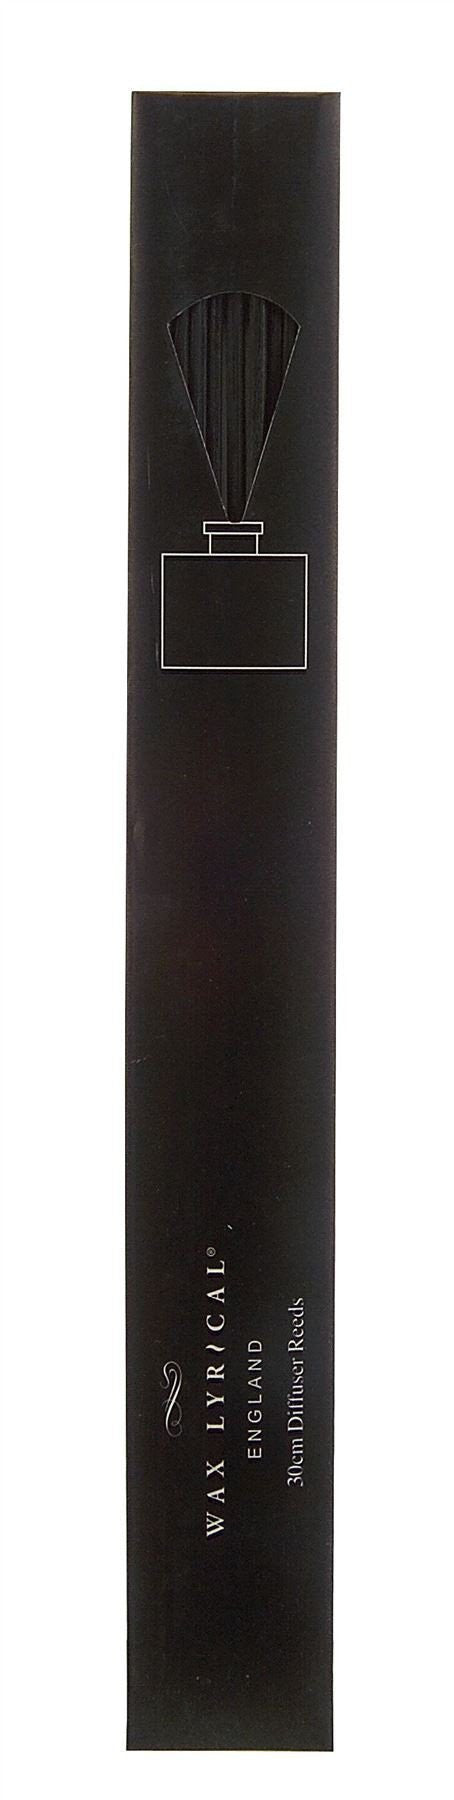 Wax Lyrical Black Diffuser Reeds RB2003 - Caths Direct